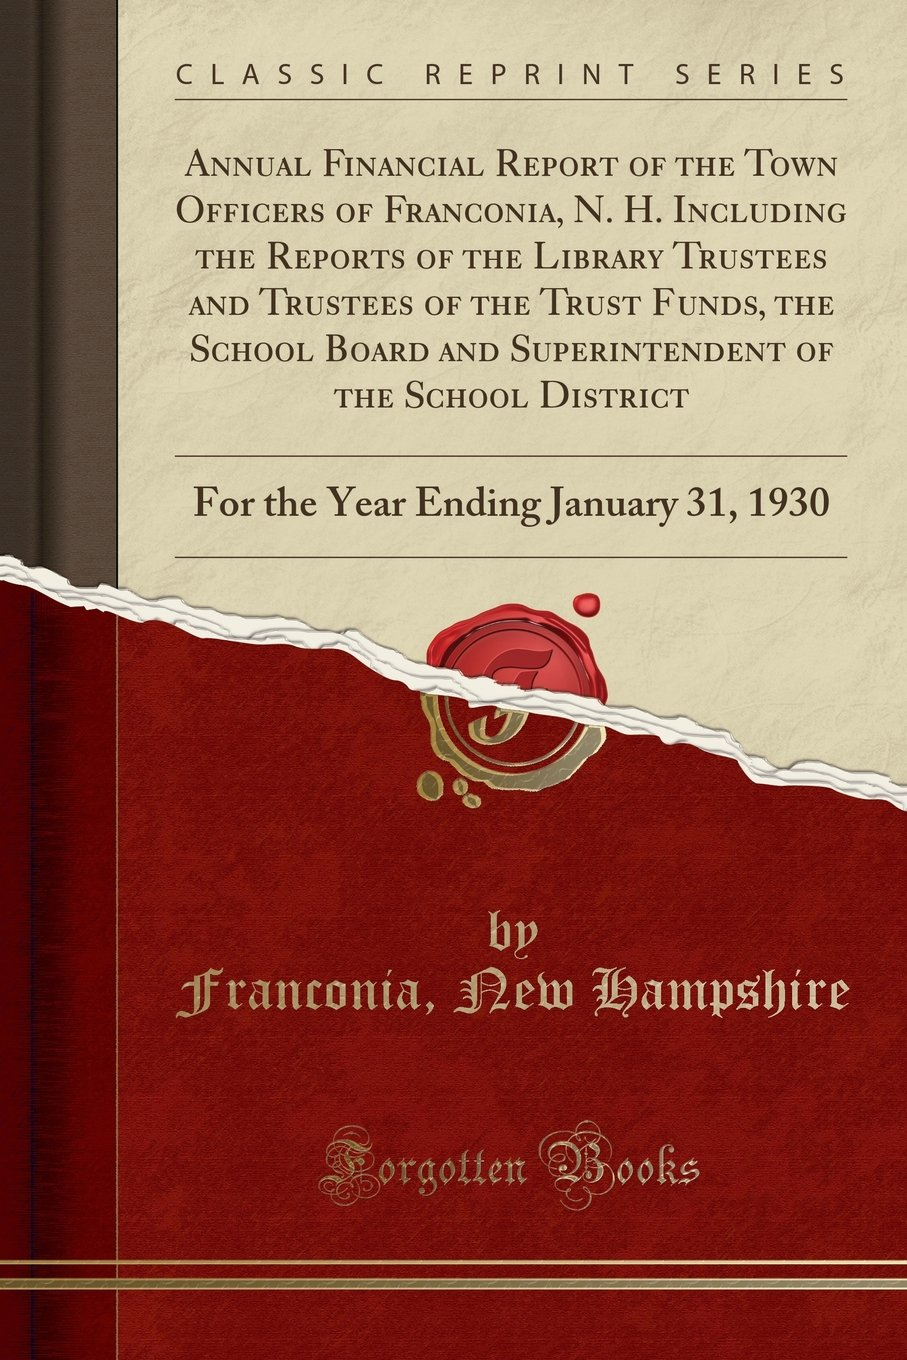 Annual Financial Report of the Town Officers of Franconia, N. H. Including the Reports of the Library Trustees and Trustees of the Trust Funds, the ... For the Year Ending January 31, 1930 pdf epub